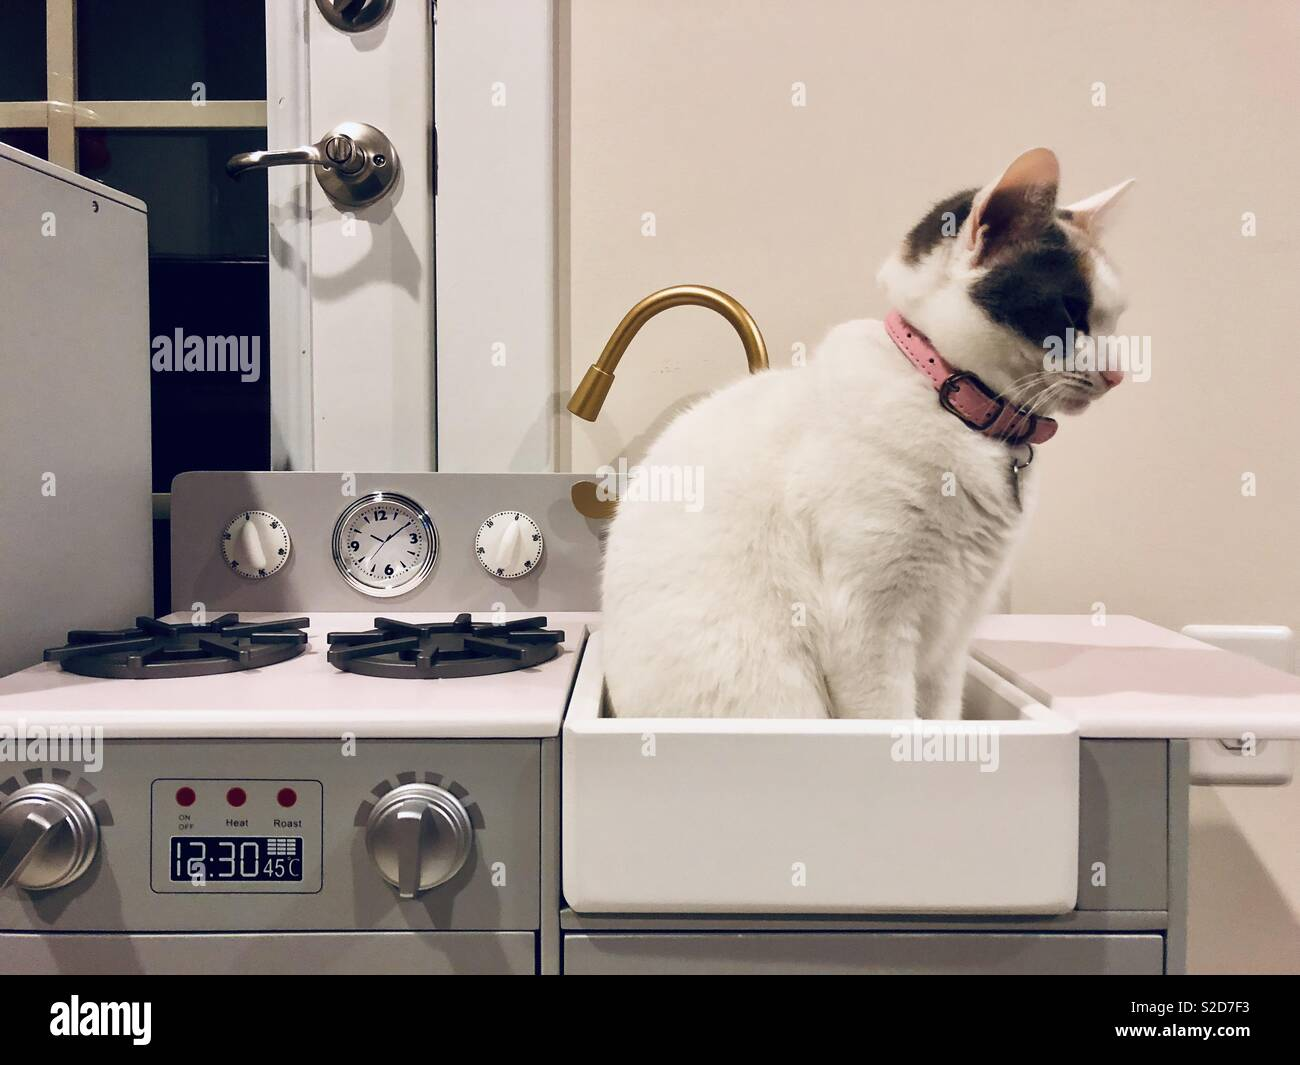 Cat sitting inside a play kitchen sink. & Cat sitting inside a play kitchen sink Stock Photo: 311307223 - Alamy